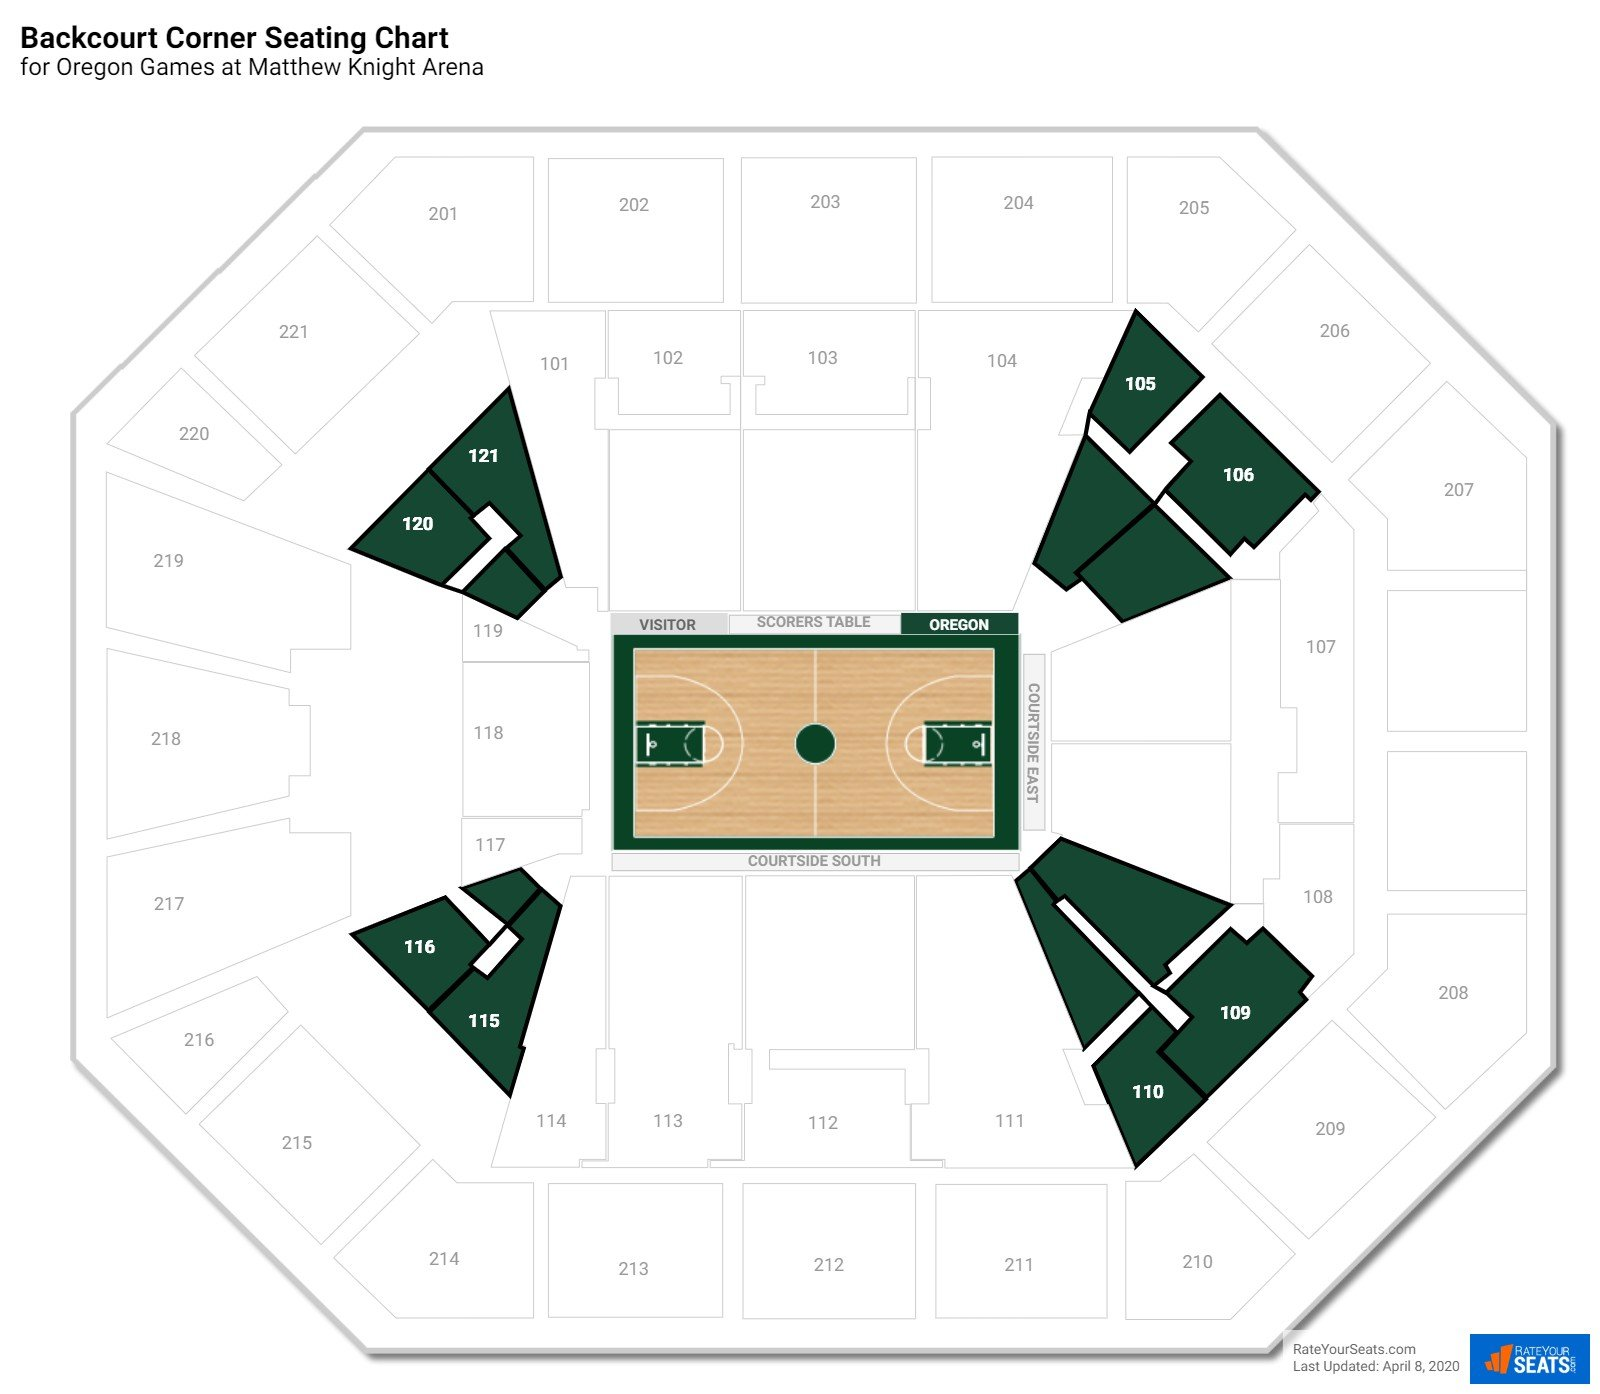 Matthew Knight Arena Oregon Seating Guide